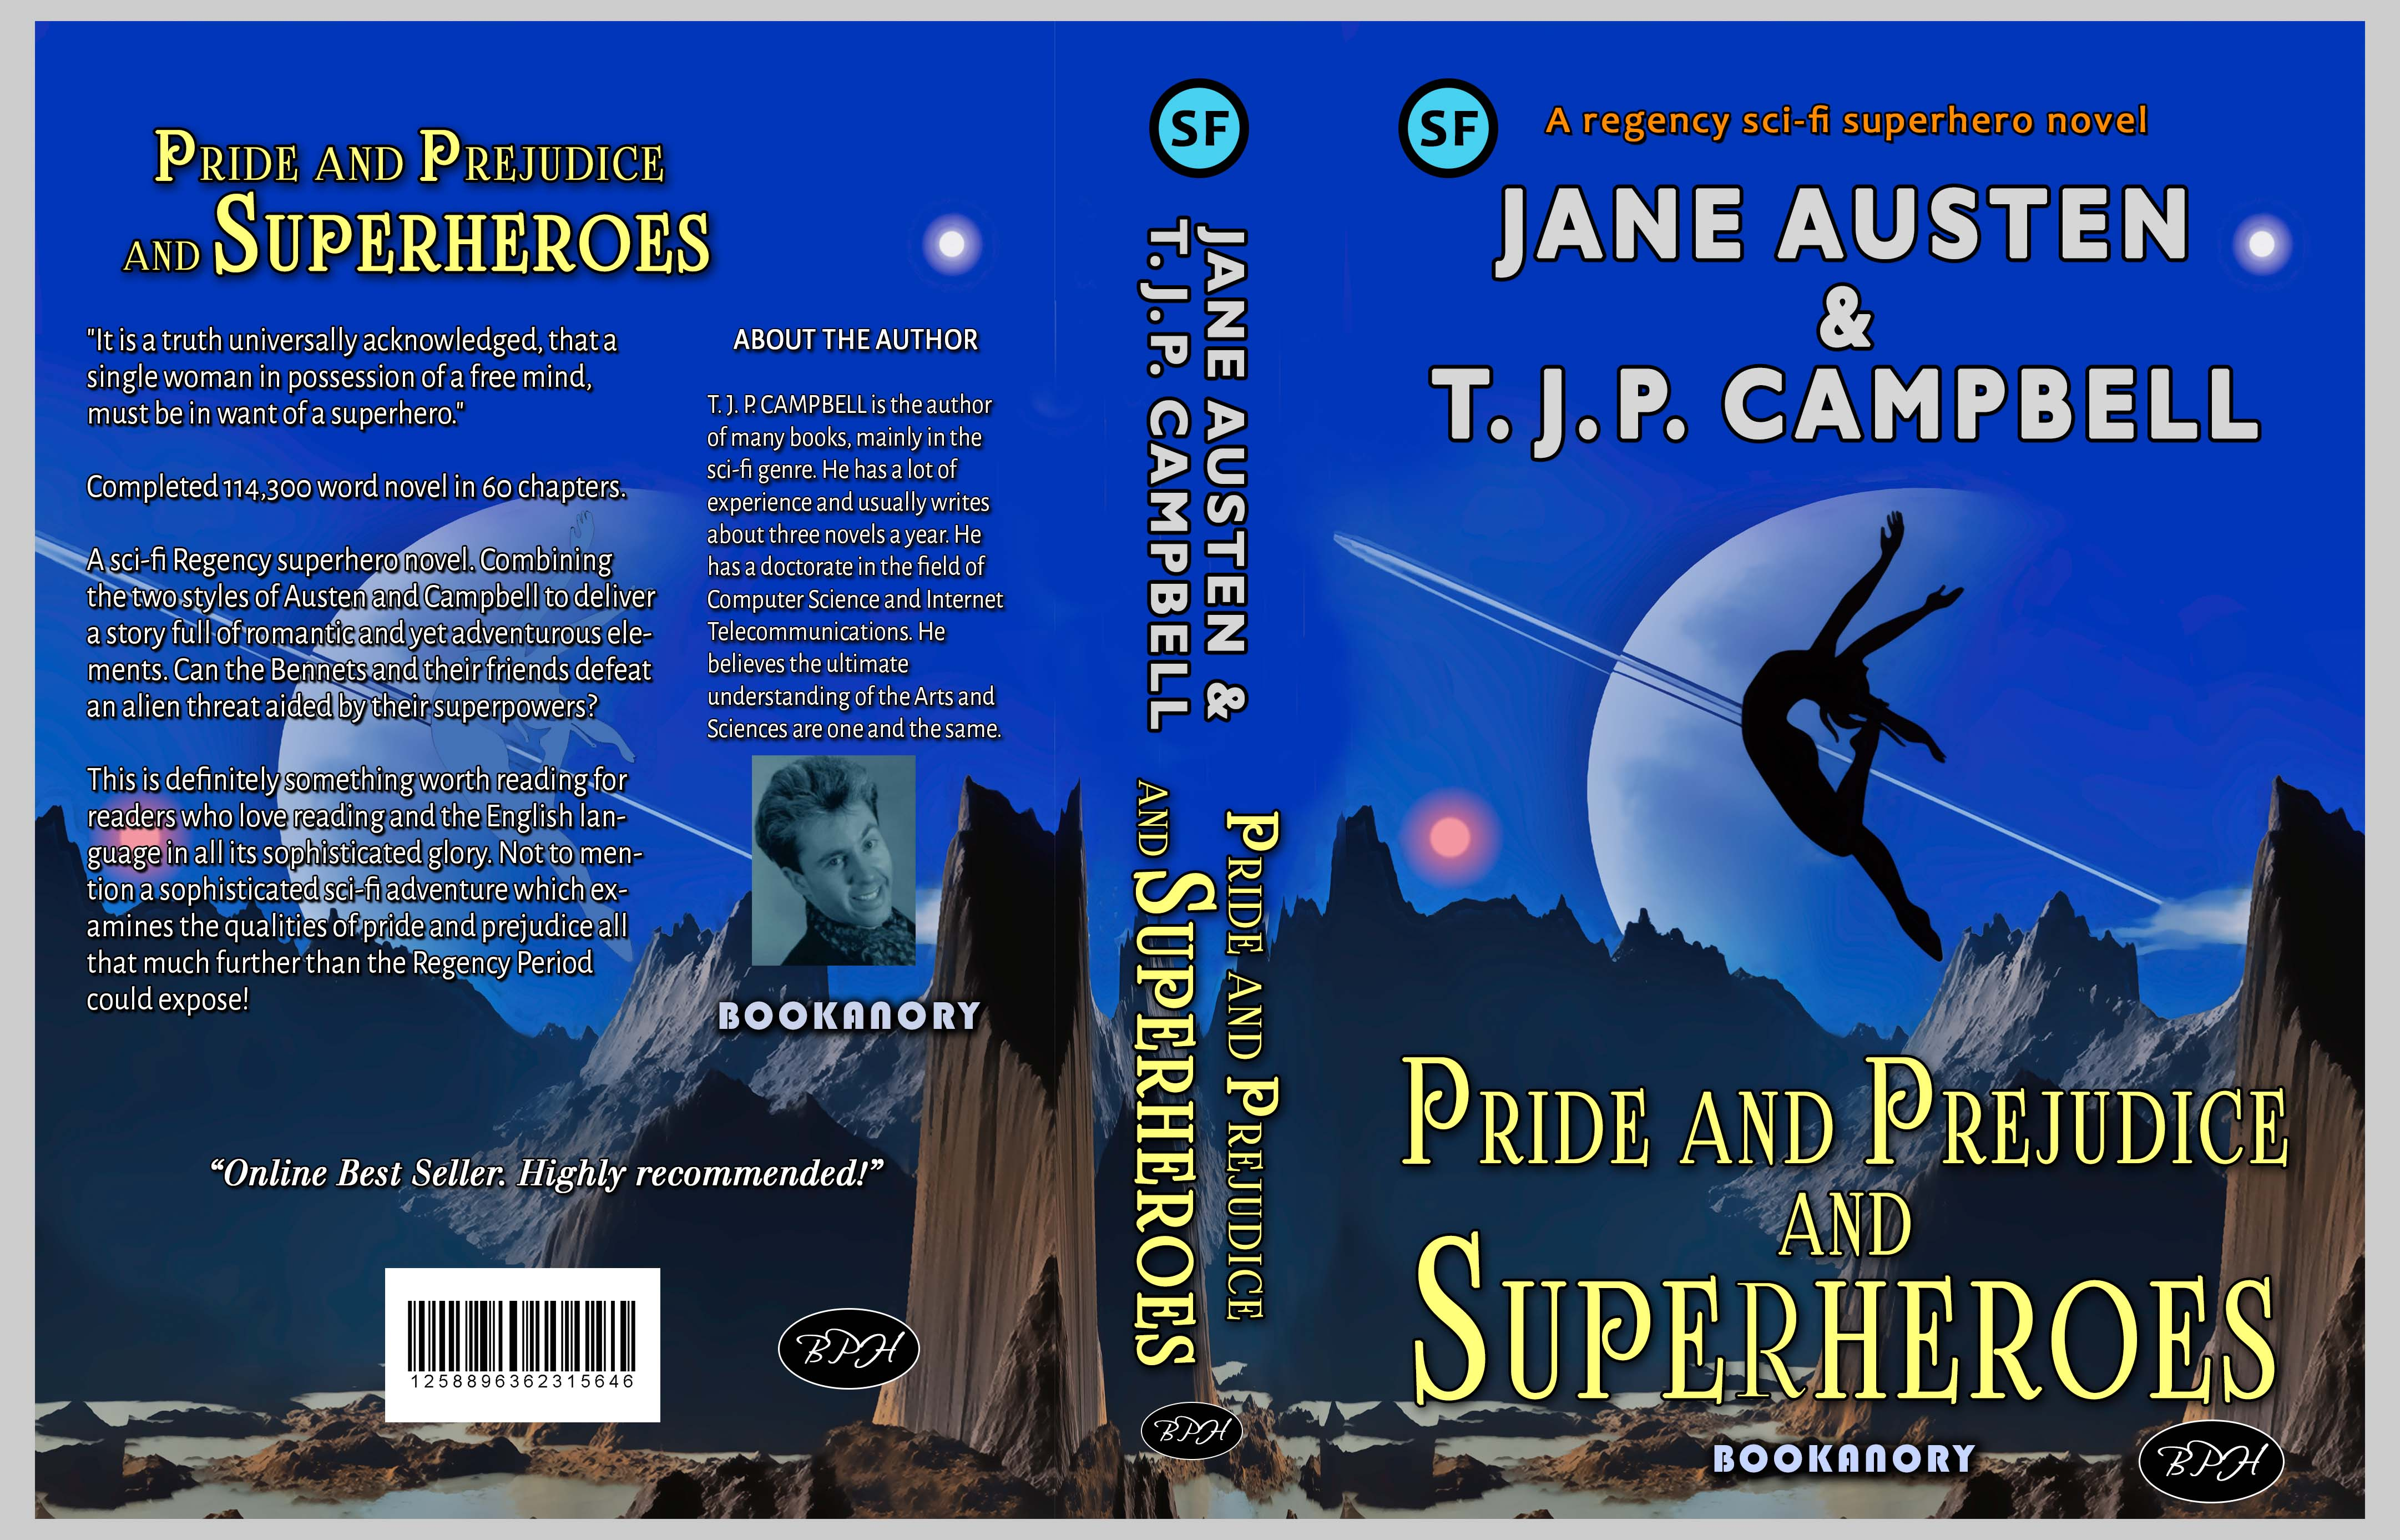 Full cover of Pride & Prejudice & Superheroes